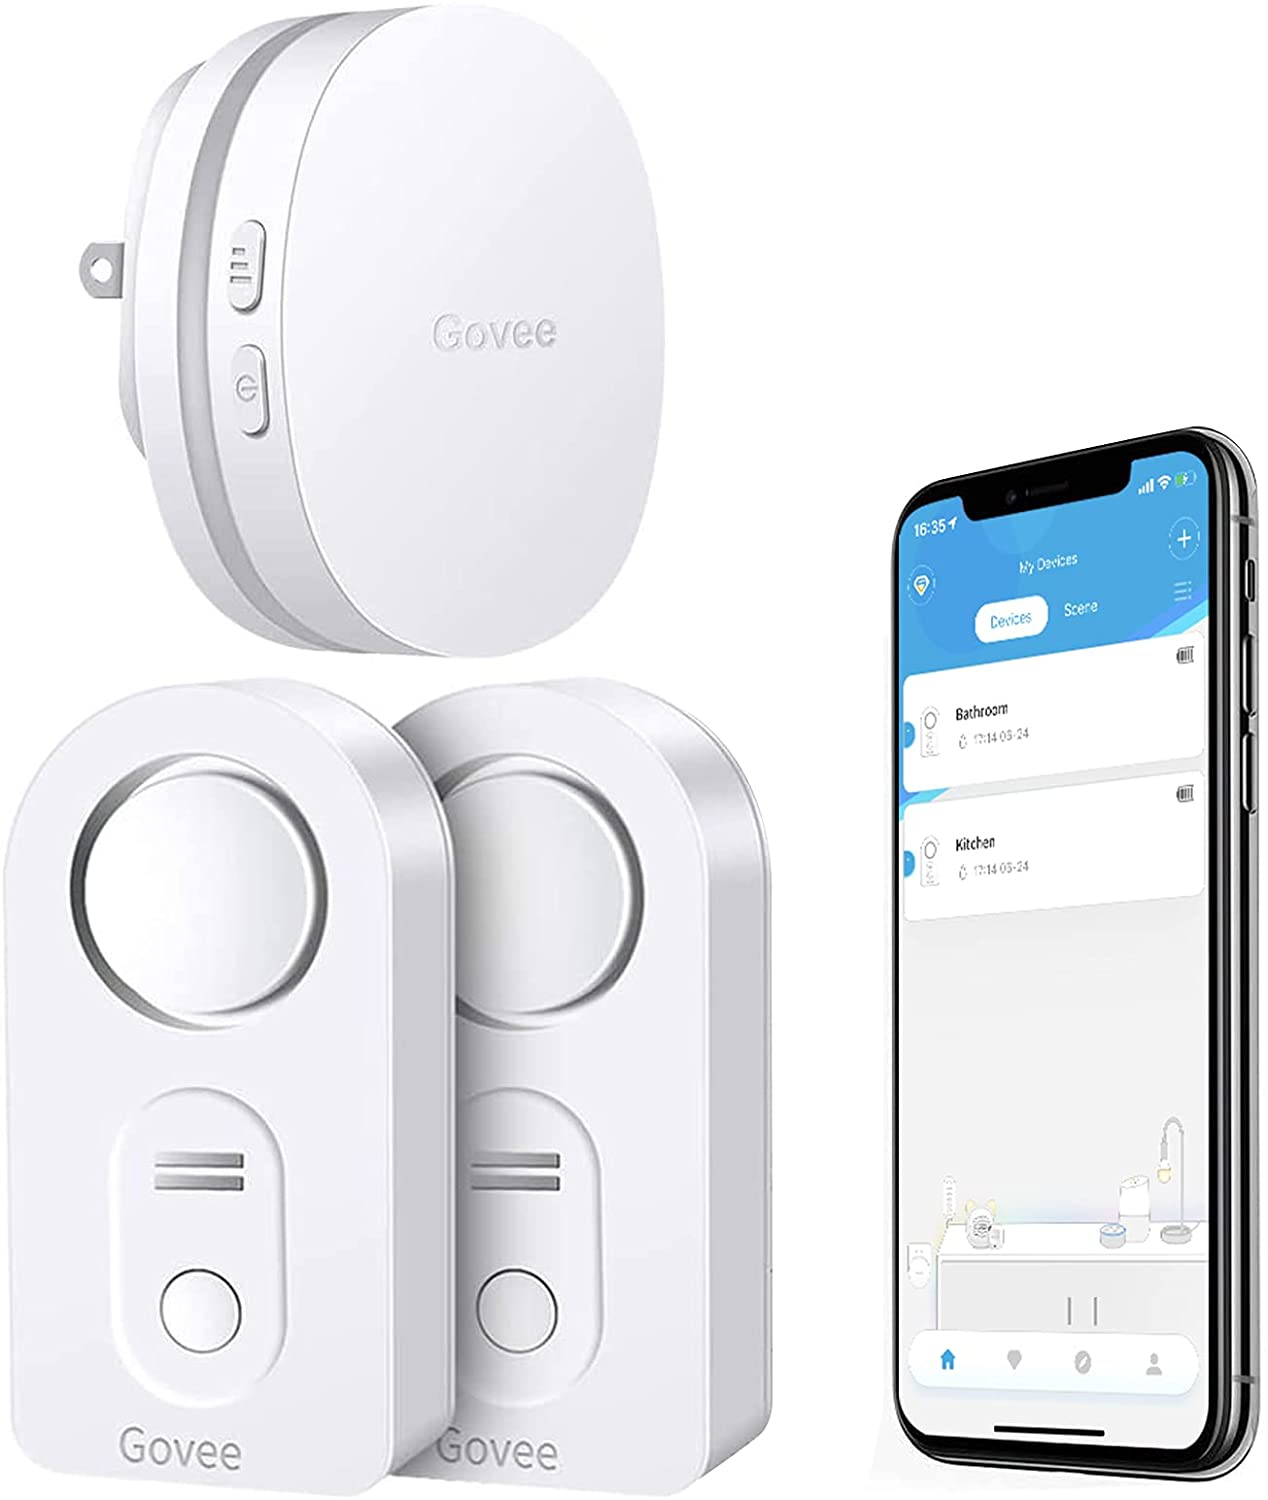 Govee WiFi Water Sensor 2 Pack,100dB Adjustable Alarm and Smartphone App Notifications -$27.99 + FS with PRIME